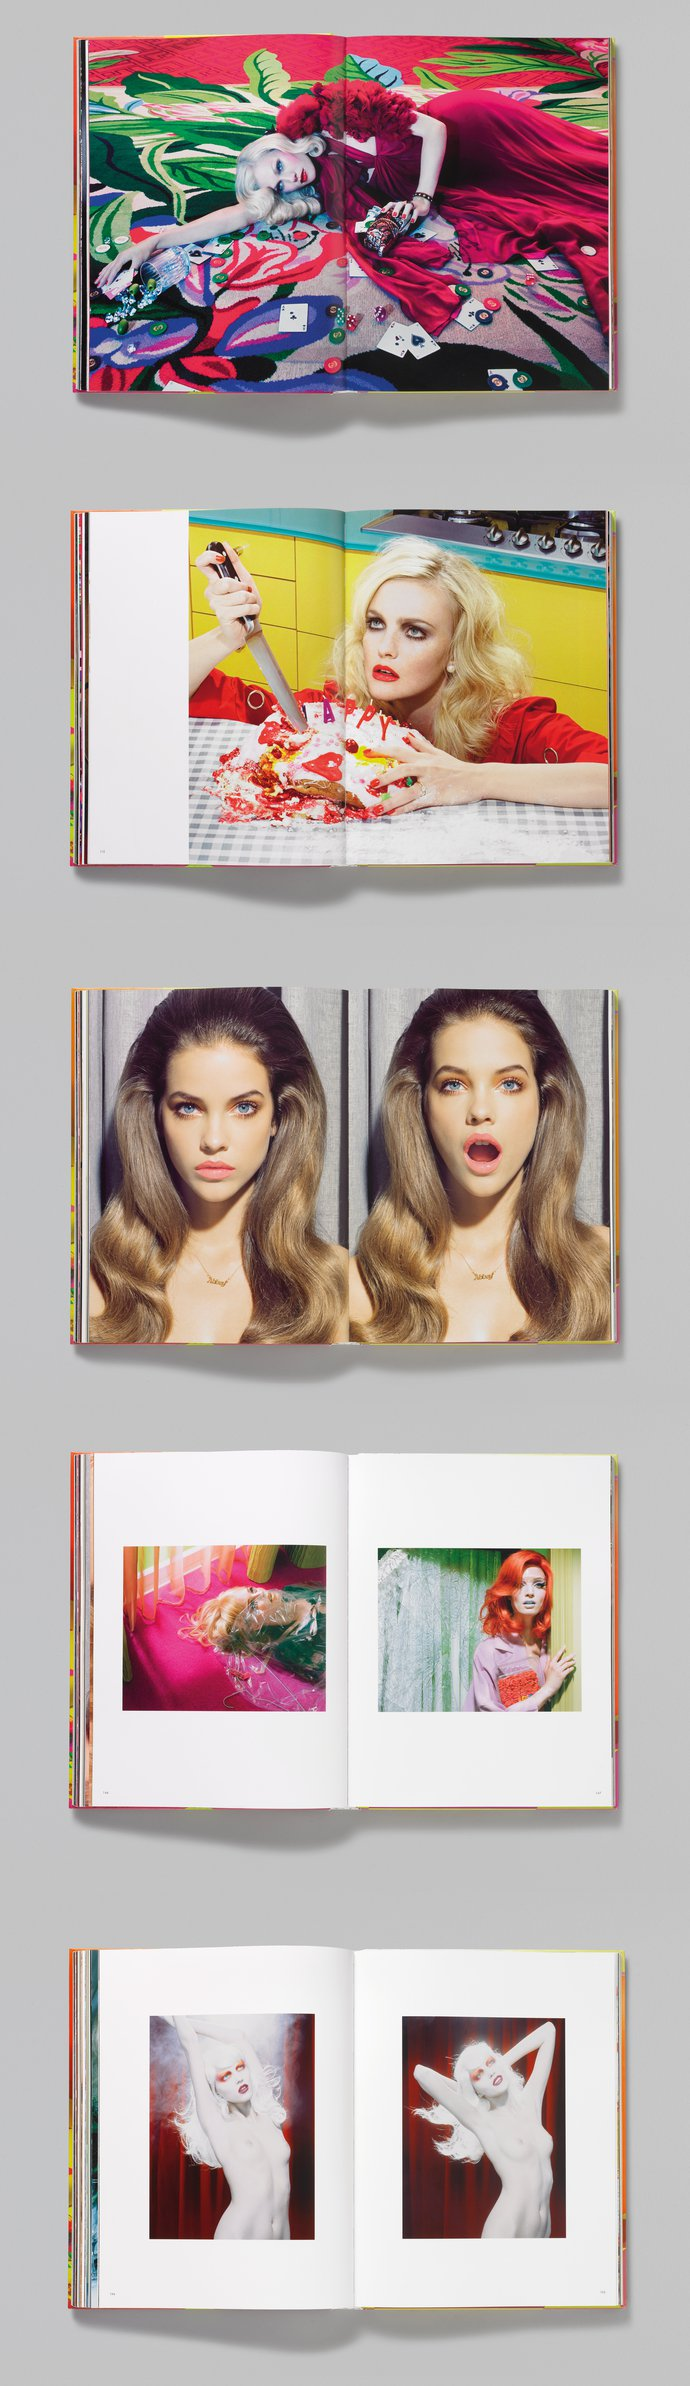 Rizzoli – Miles Aldridge: I Only Want You to Love Me, 2013 (Publication), image 3